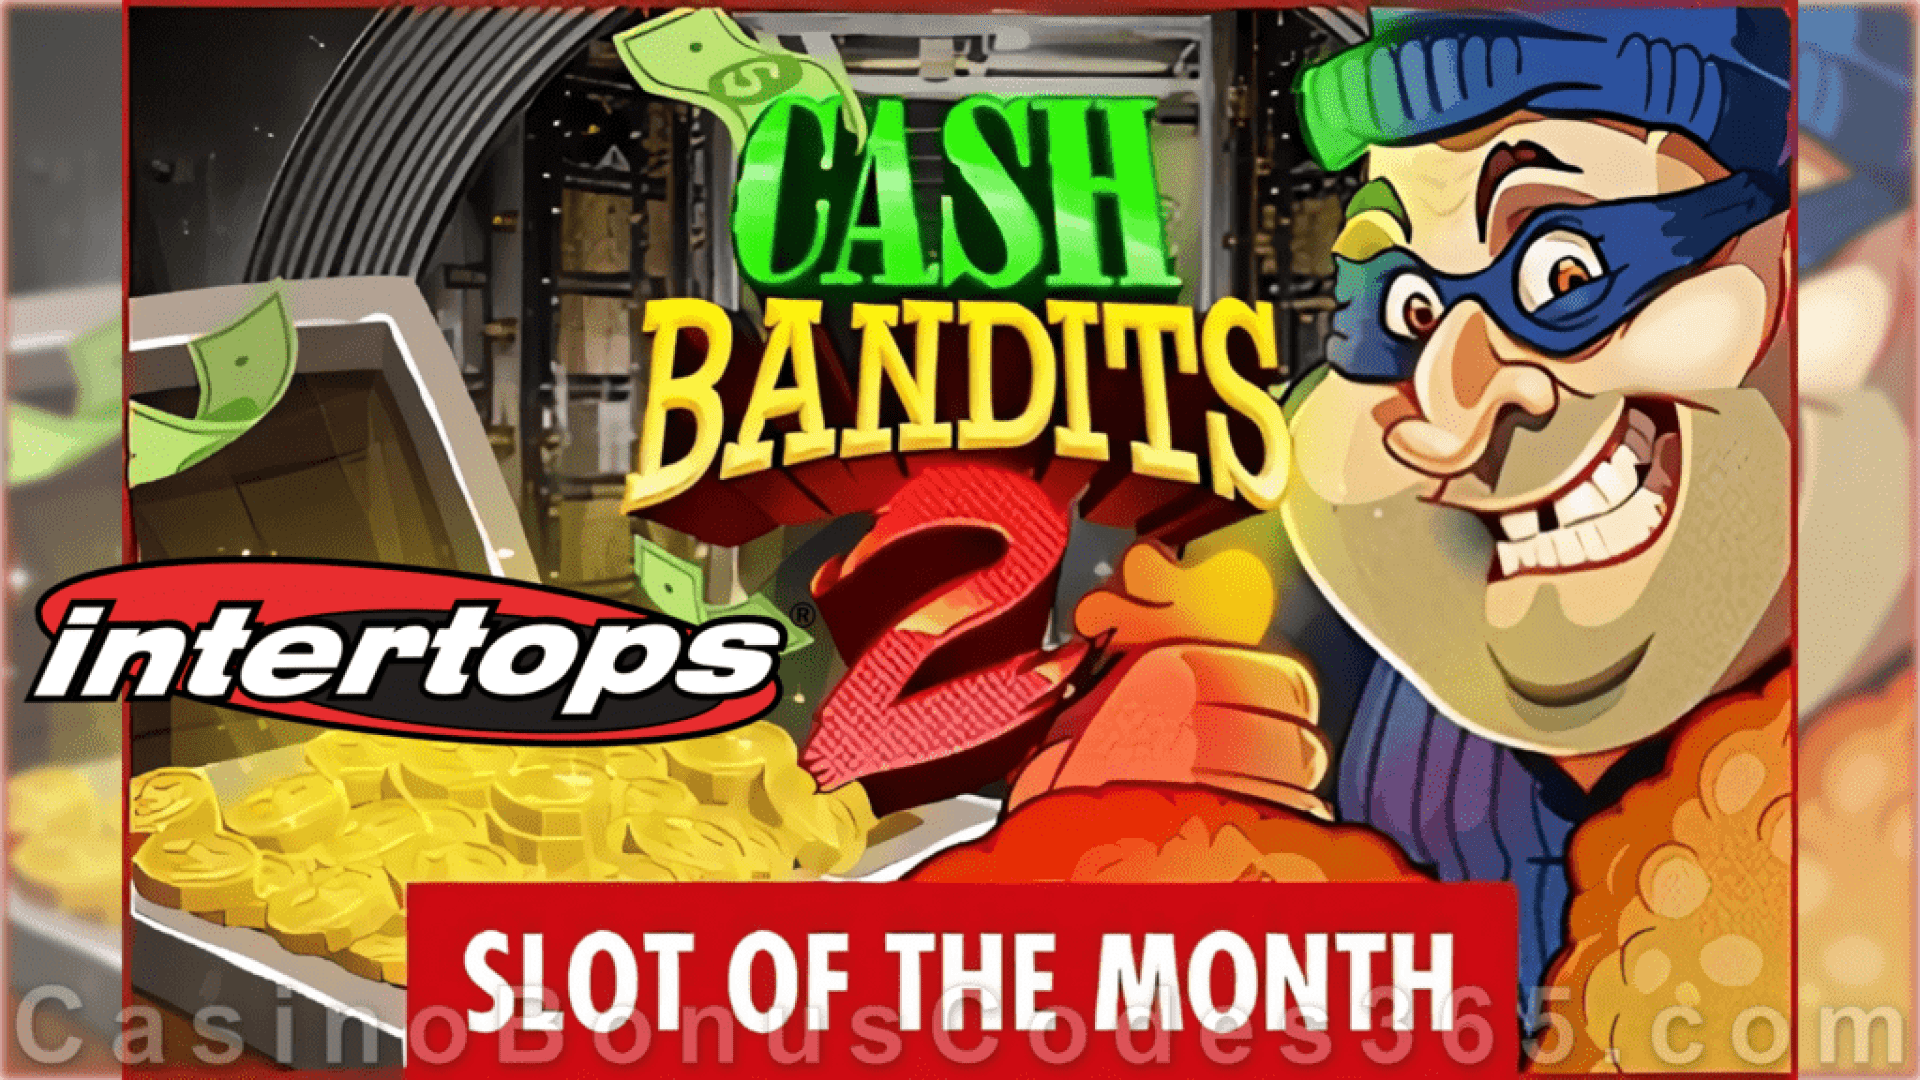 Intertops Casino Red RTG Cash Bandits 2 February Slot of the Month Special Offer